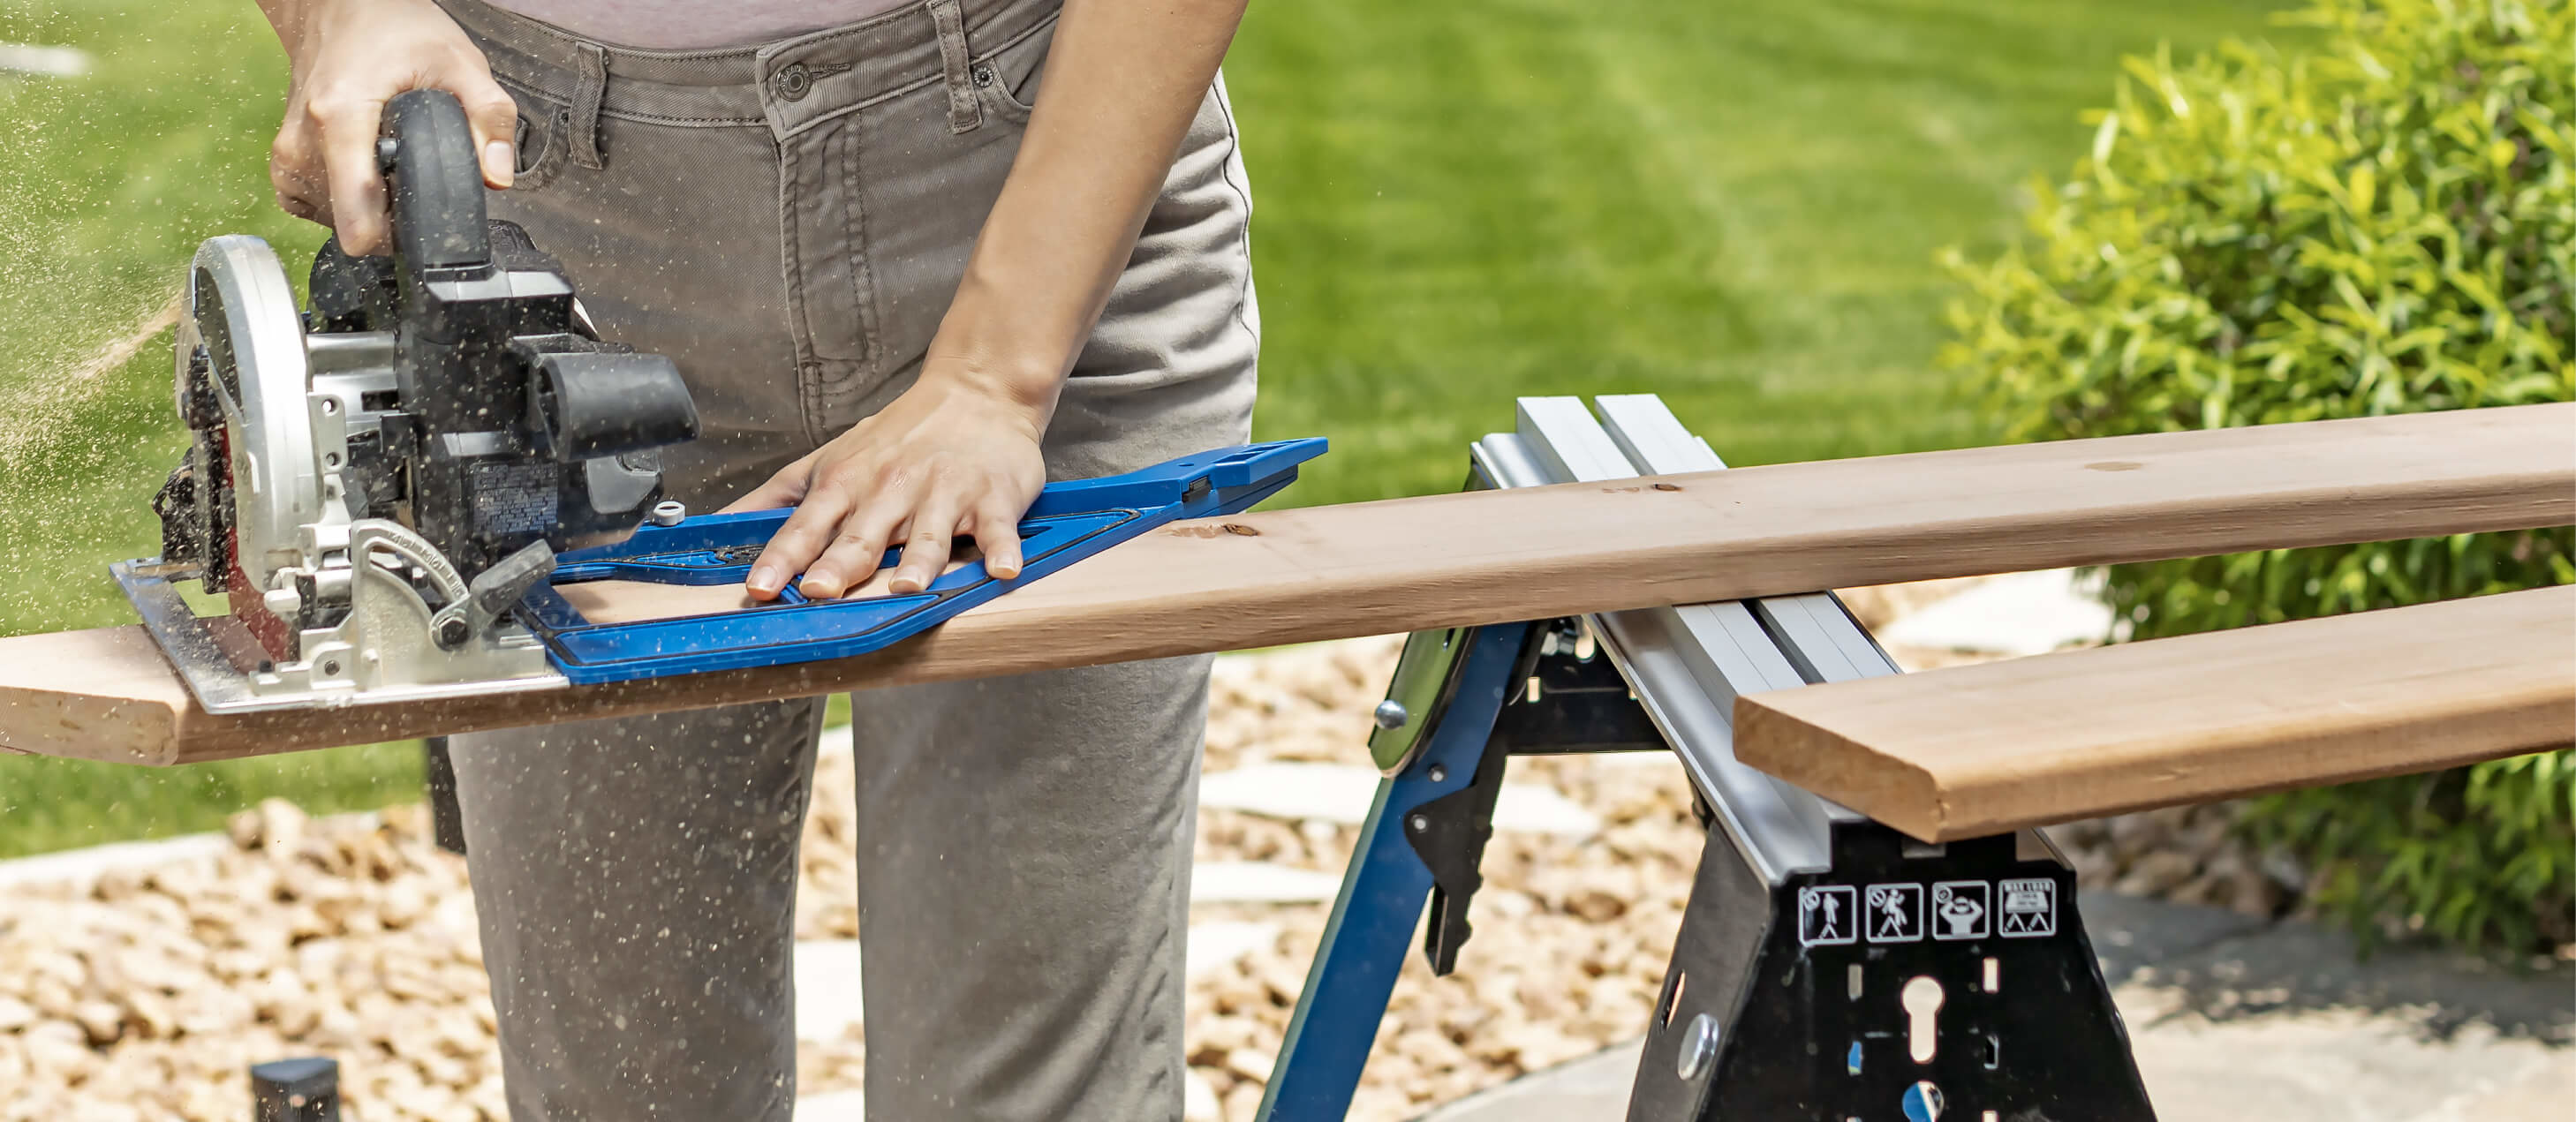 Get even better results with your circular saw